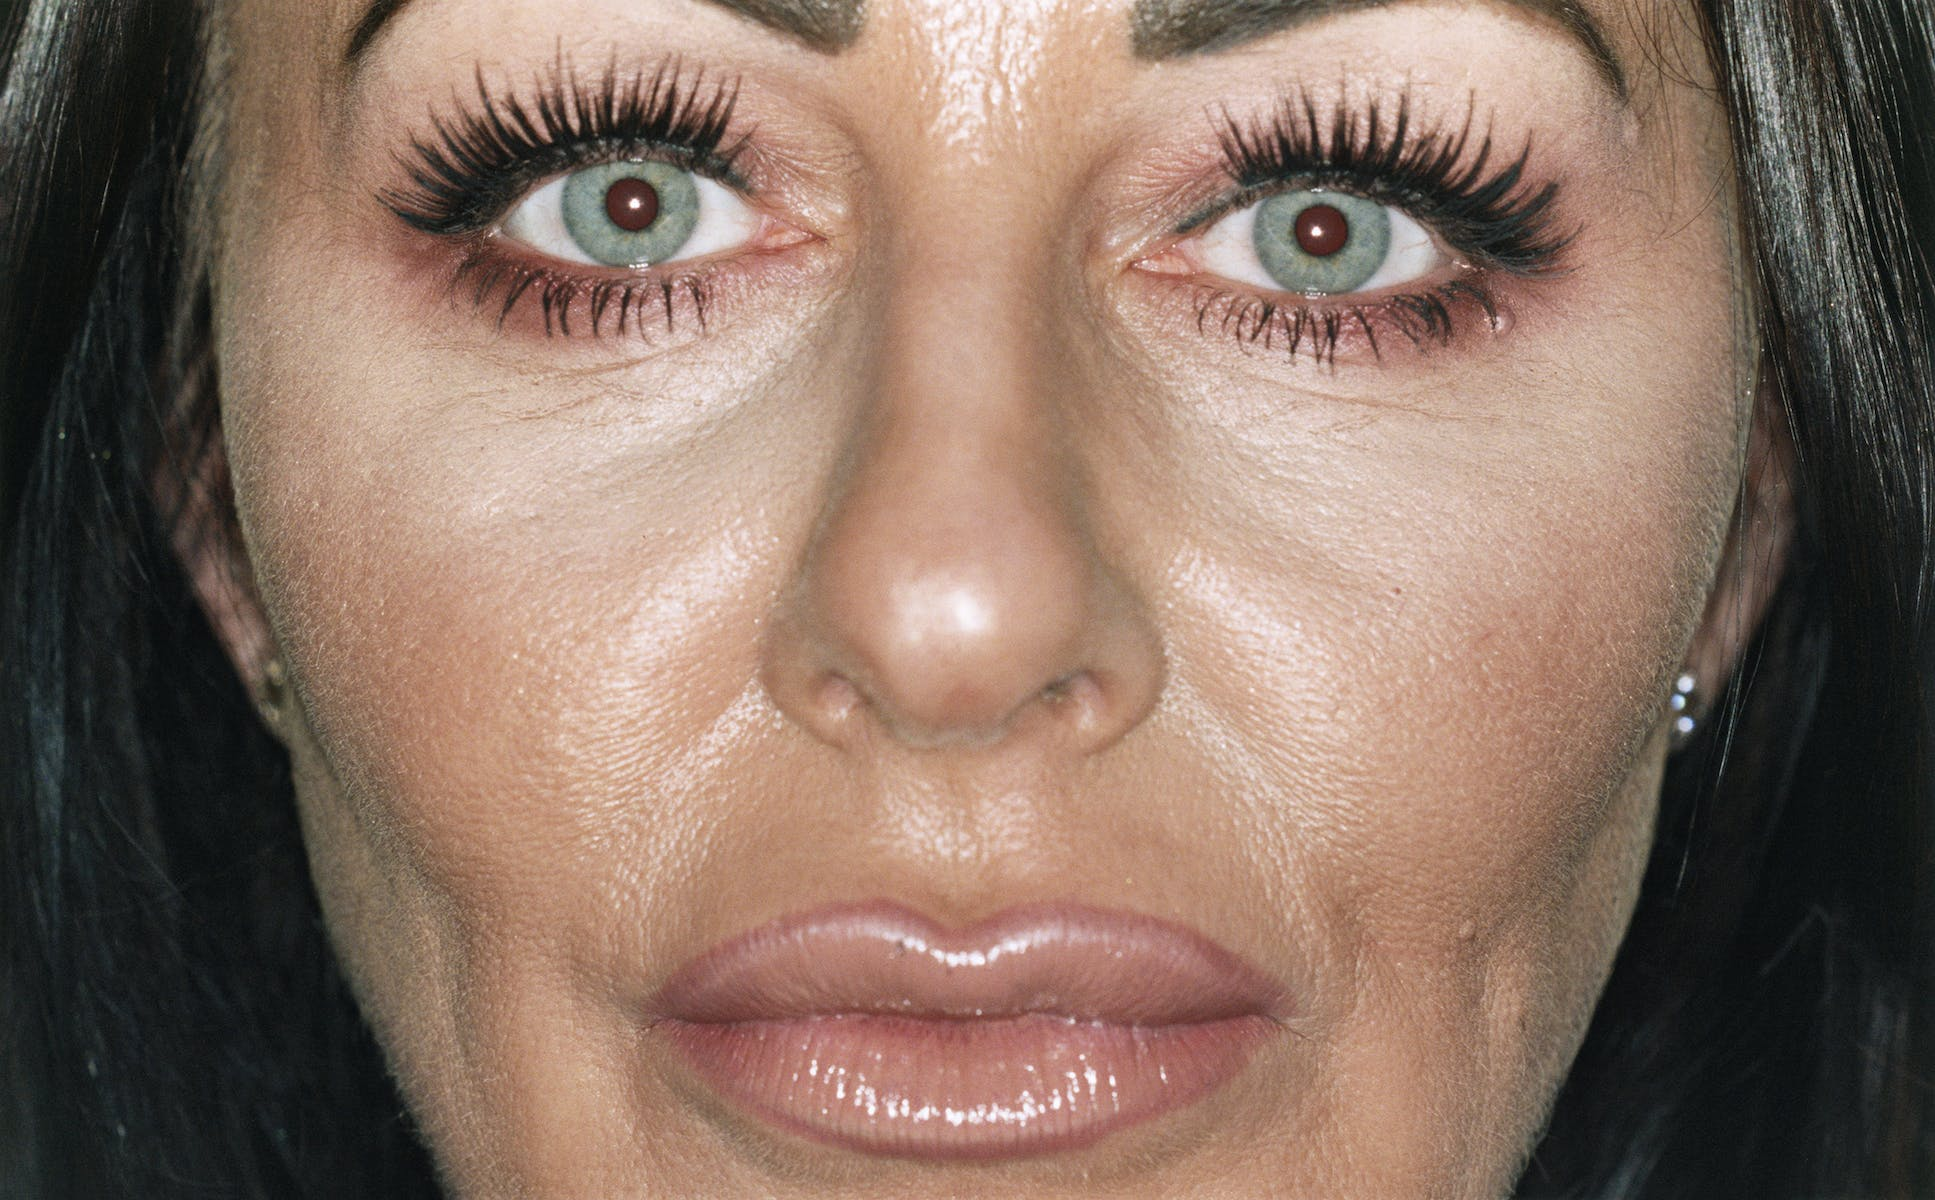 This is what 10+ years of Botox looks like - The Face